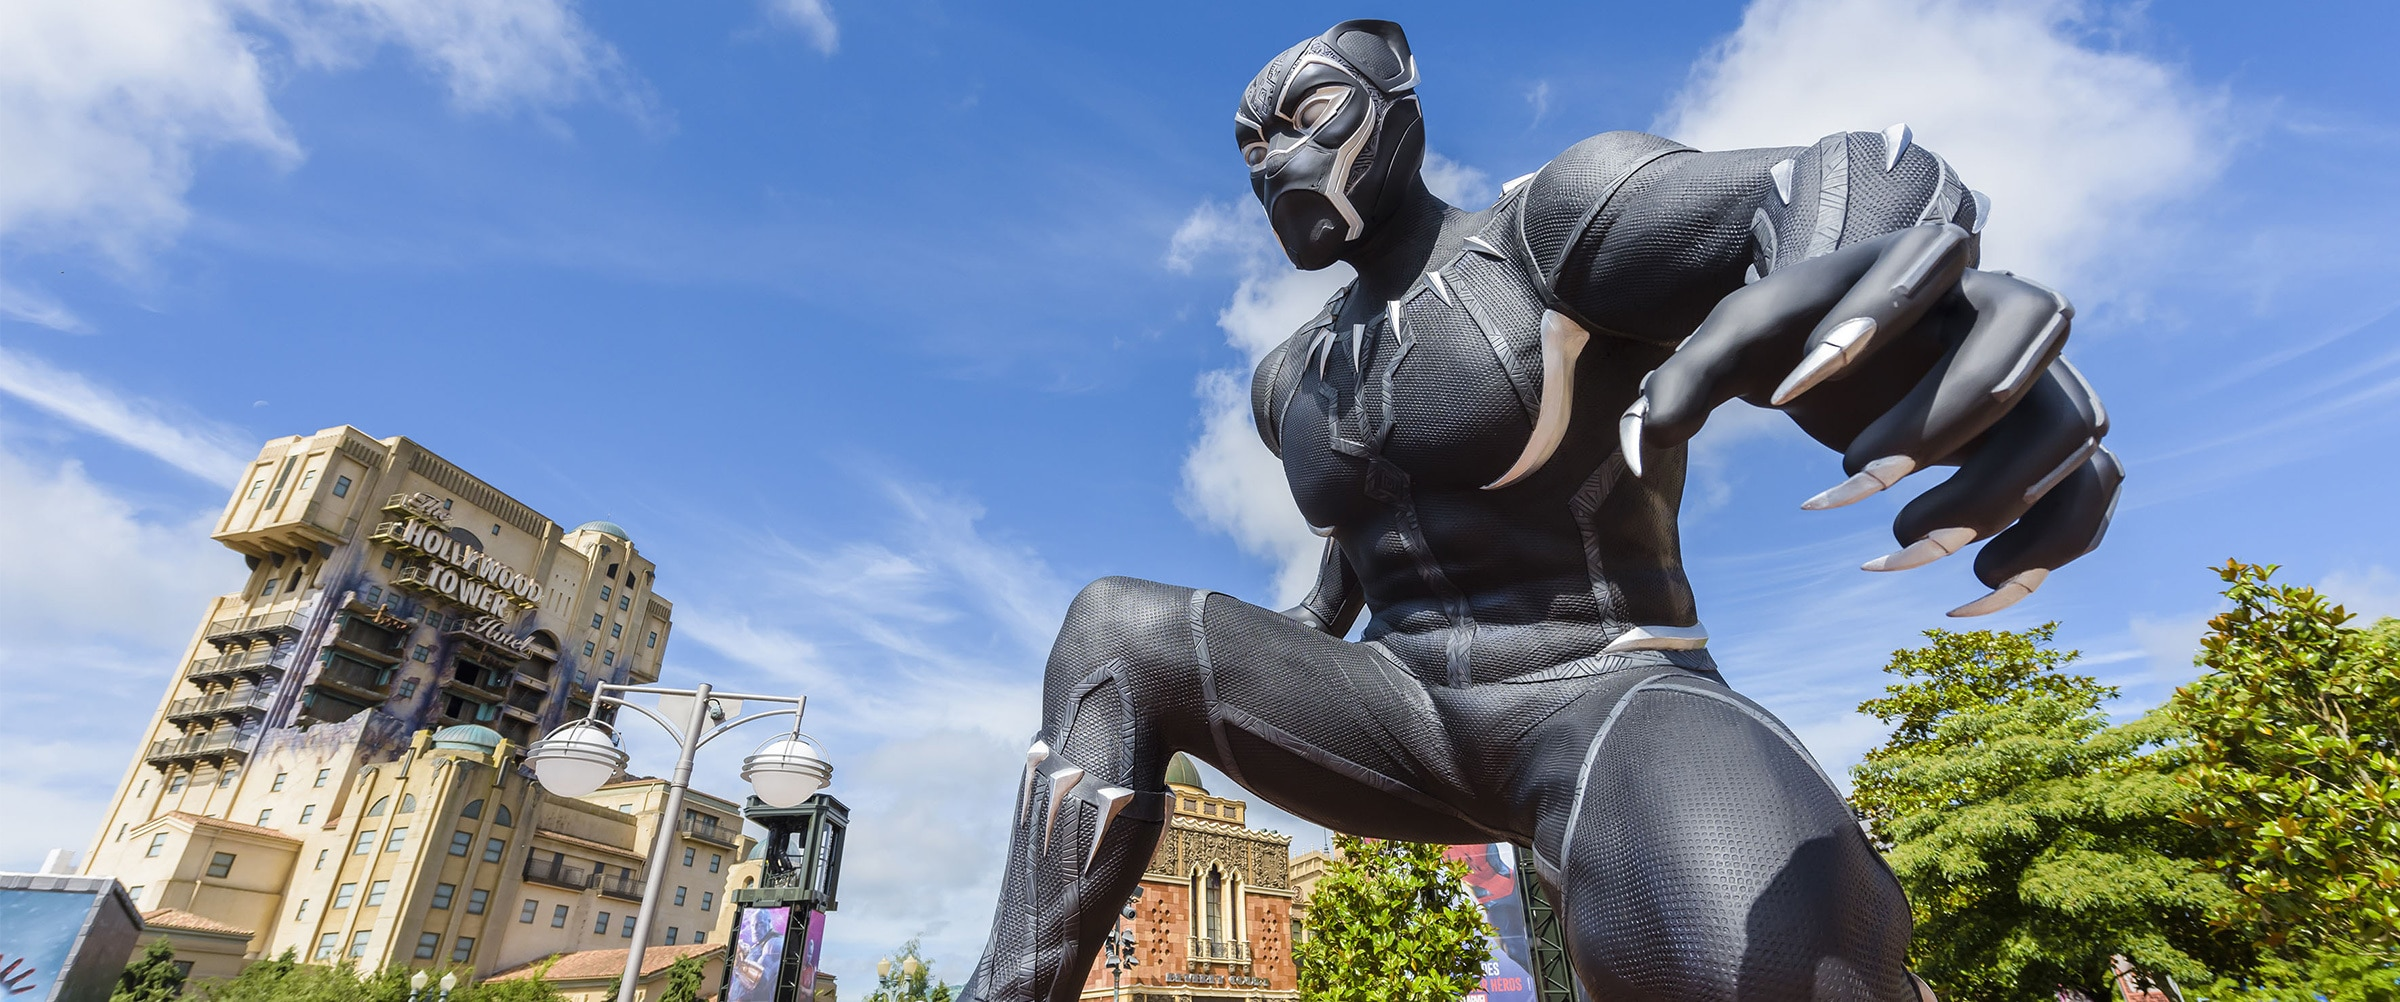 Marvel Sommer in Disneyland® Paris